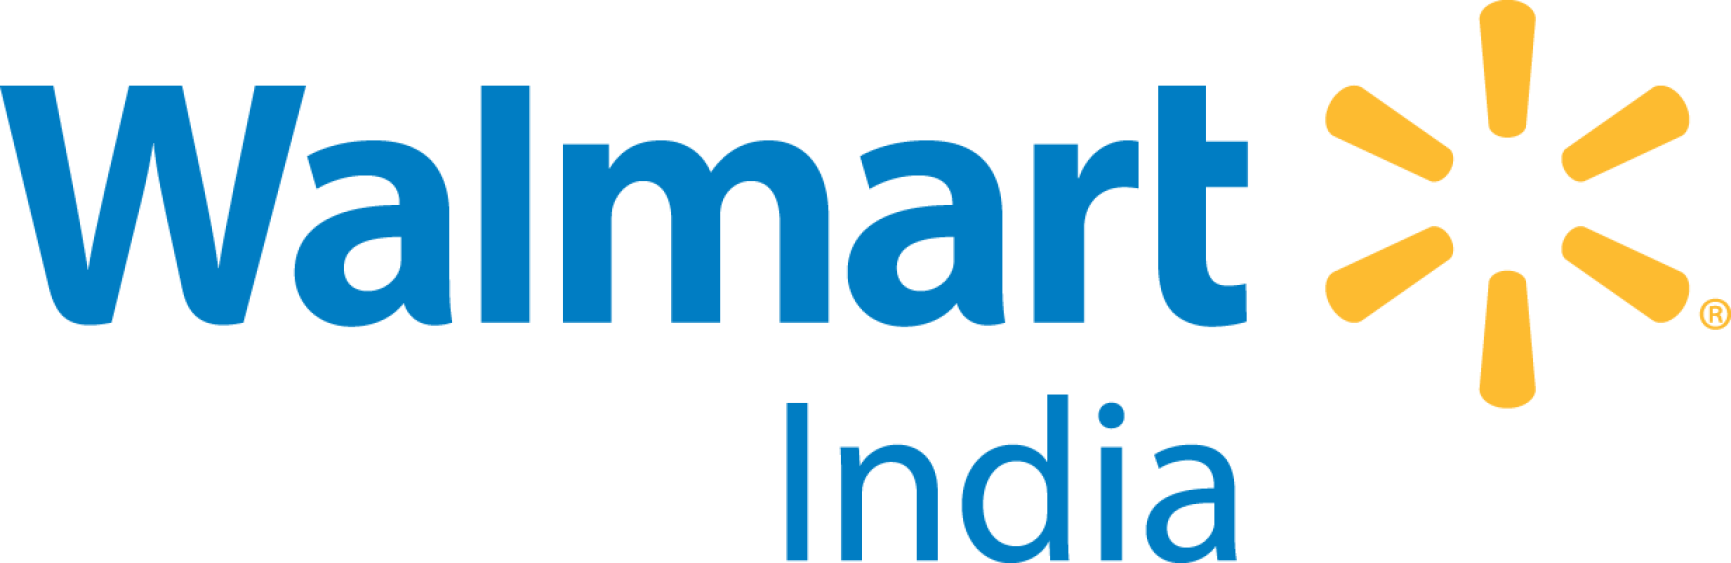 Walmart India Logo Vertical.